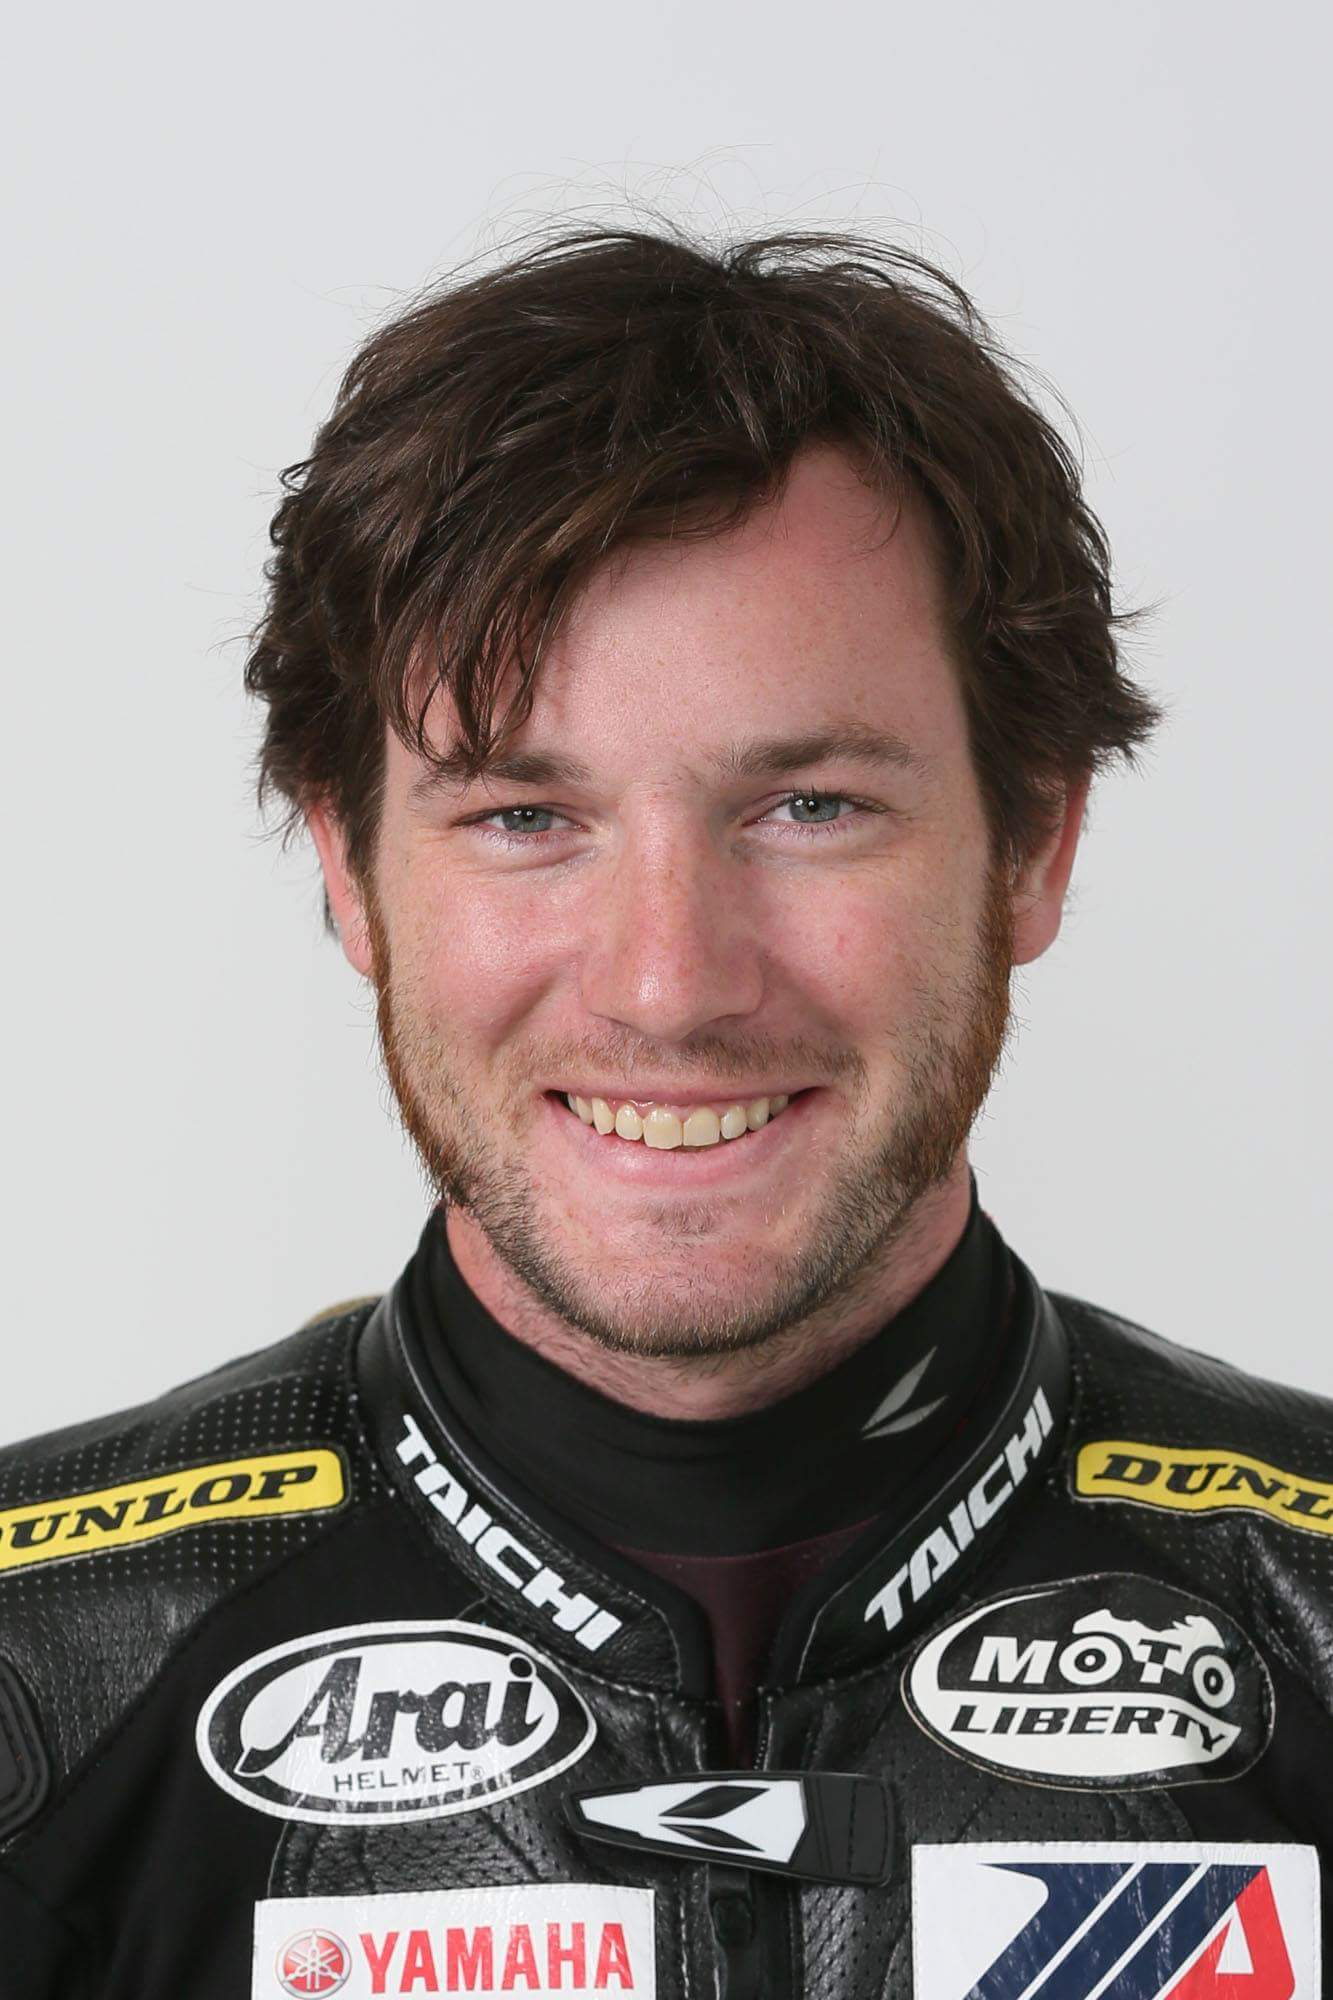 Dane's Racing Profile Headshot